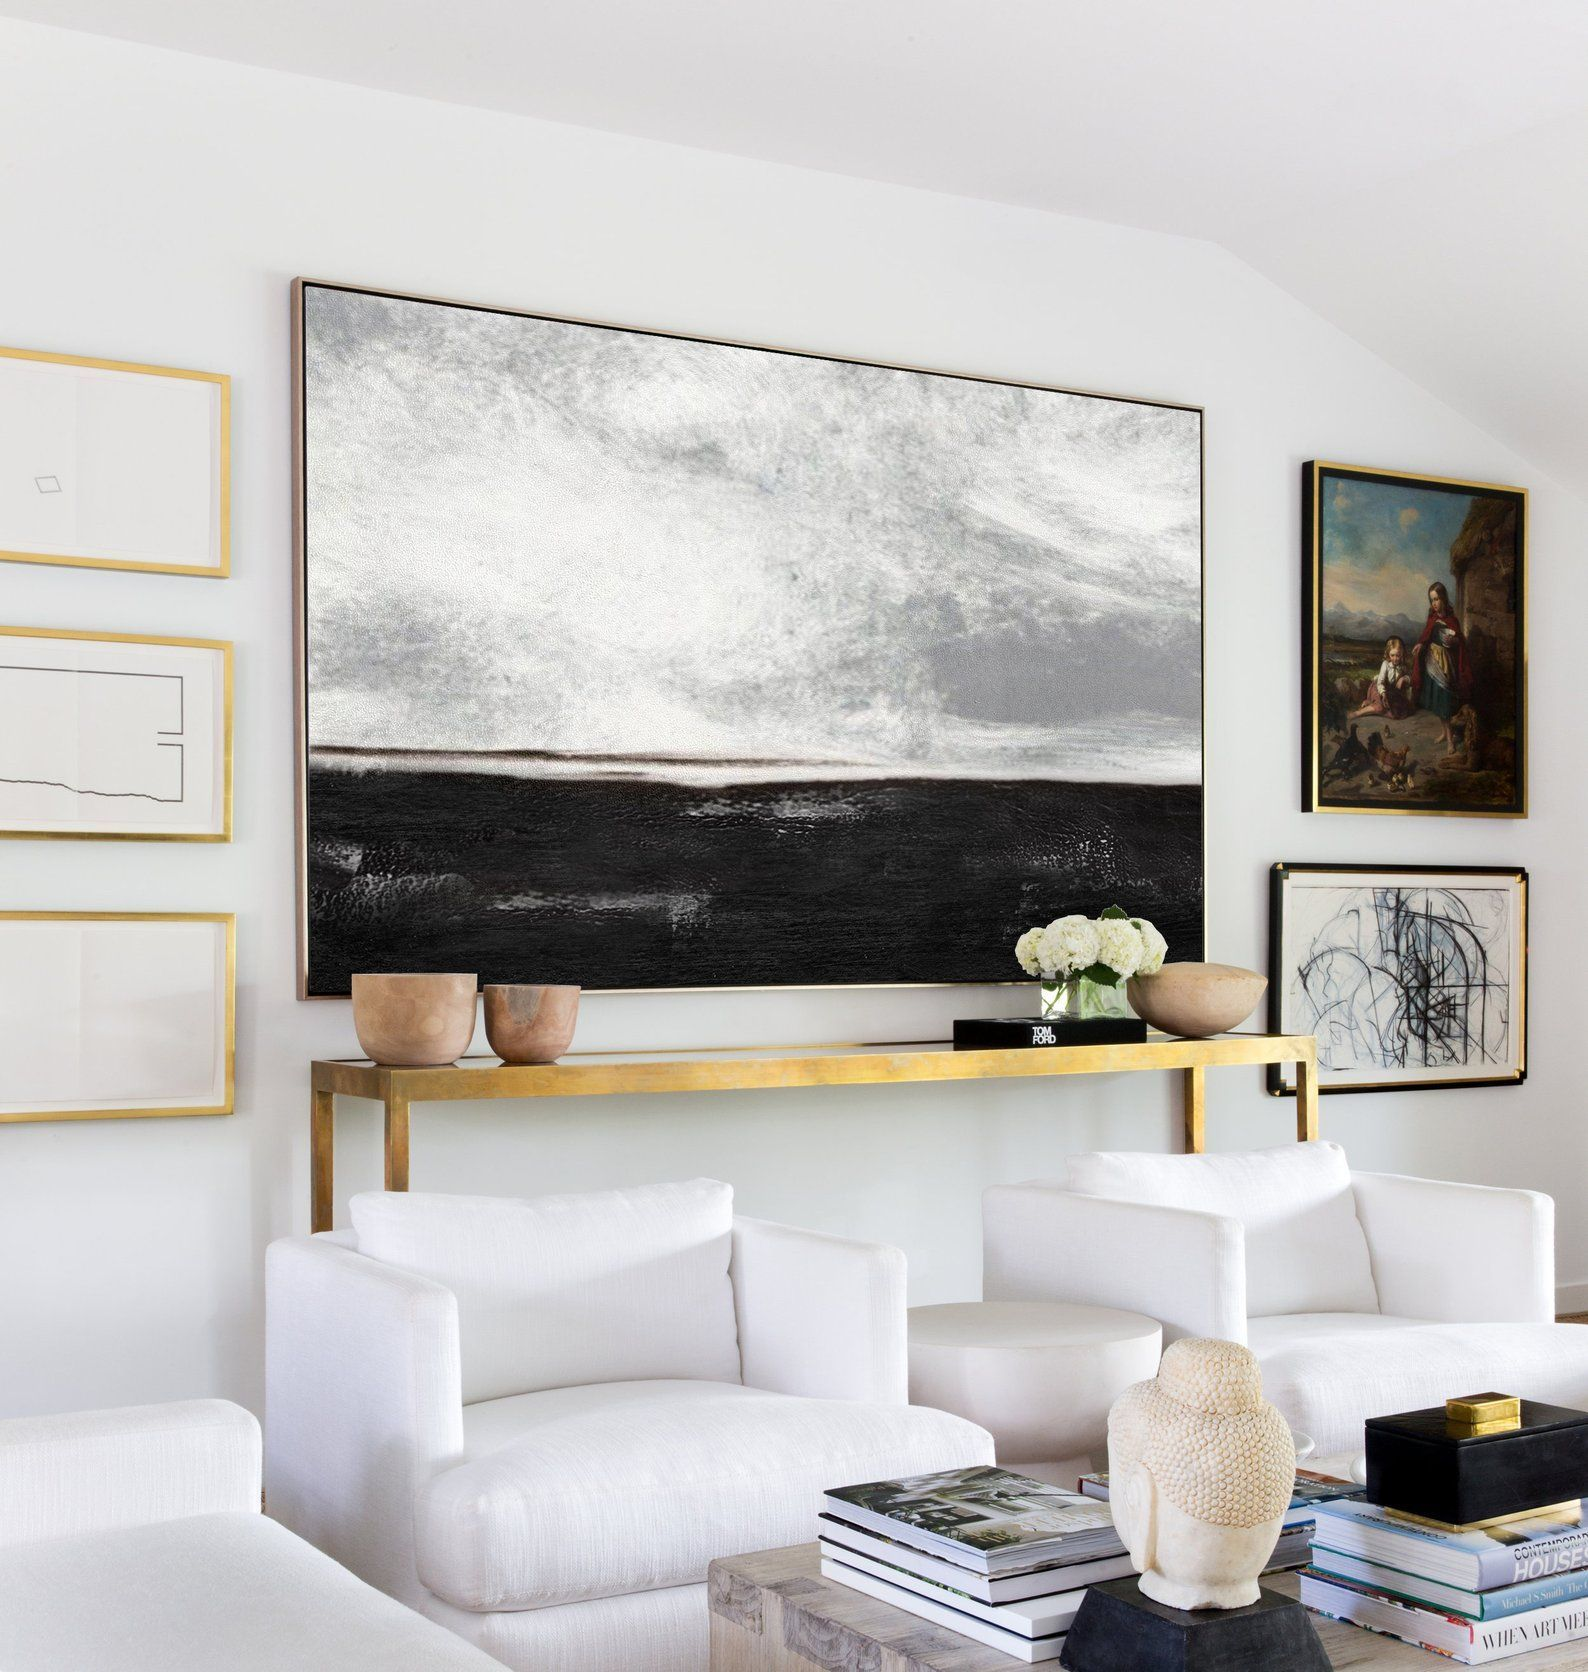 Black White Painting,Large Abstract Painting, Landscape, Horizontal Wall Art,Handmade Large Wall Art,Wall Decor Art, Large Canvas Art#abstract #art #arthandmade #artwall #black #canvas #decor #horizontal #landscape #large #painting #paintinglarge #wall #white